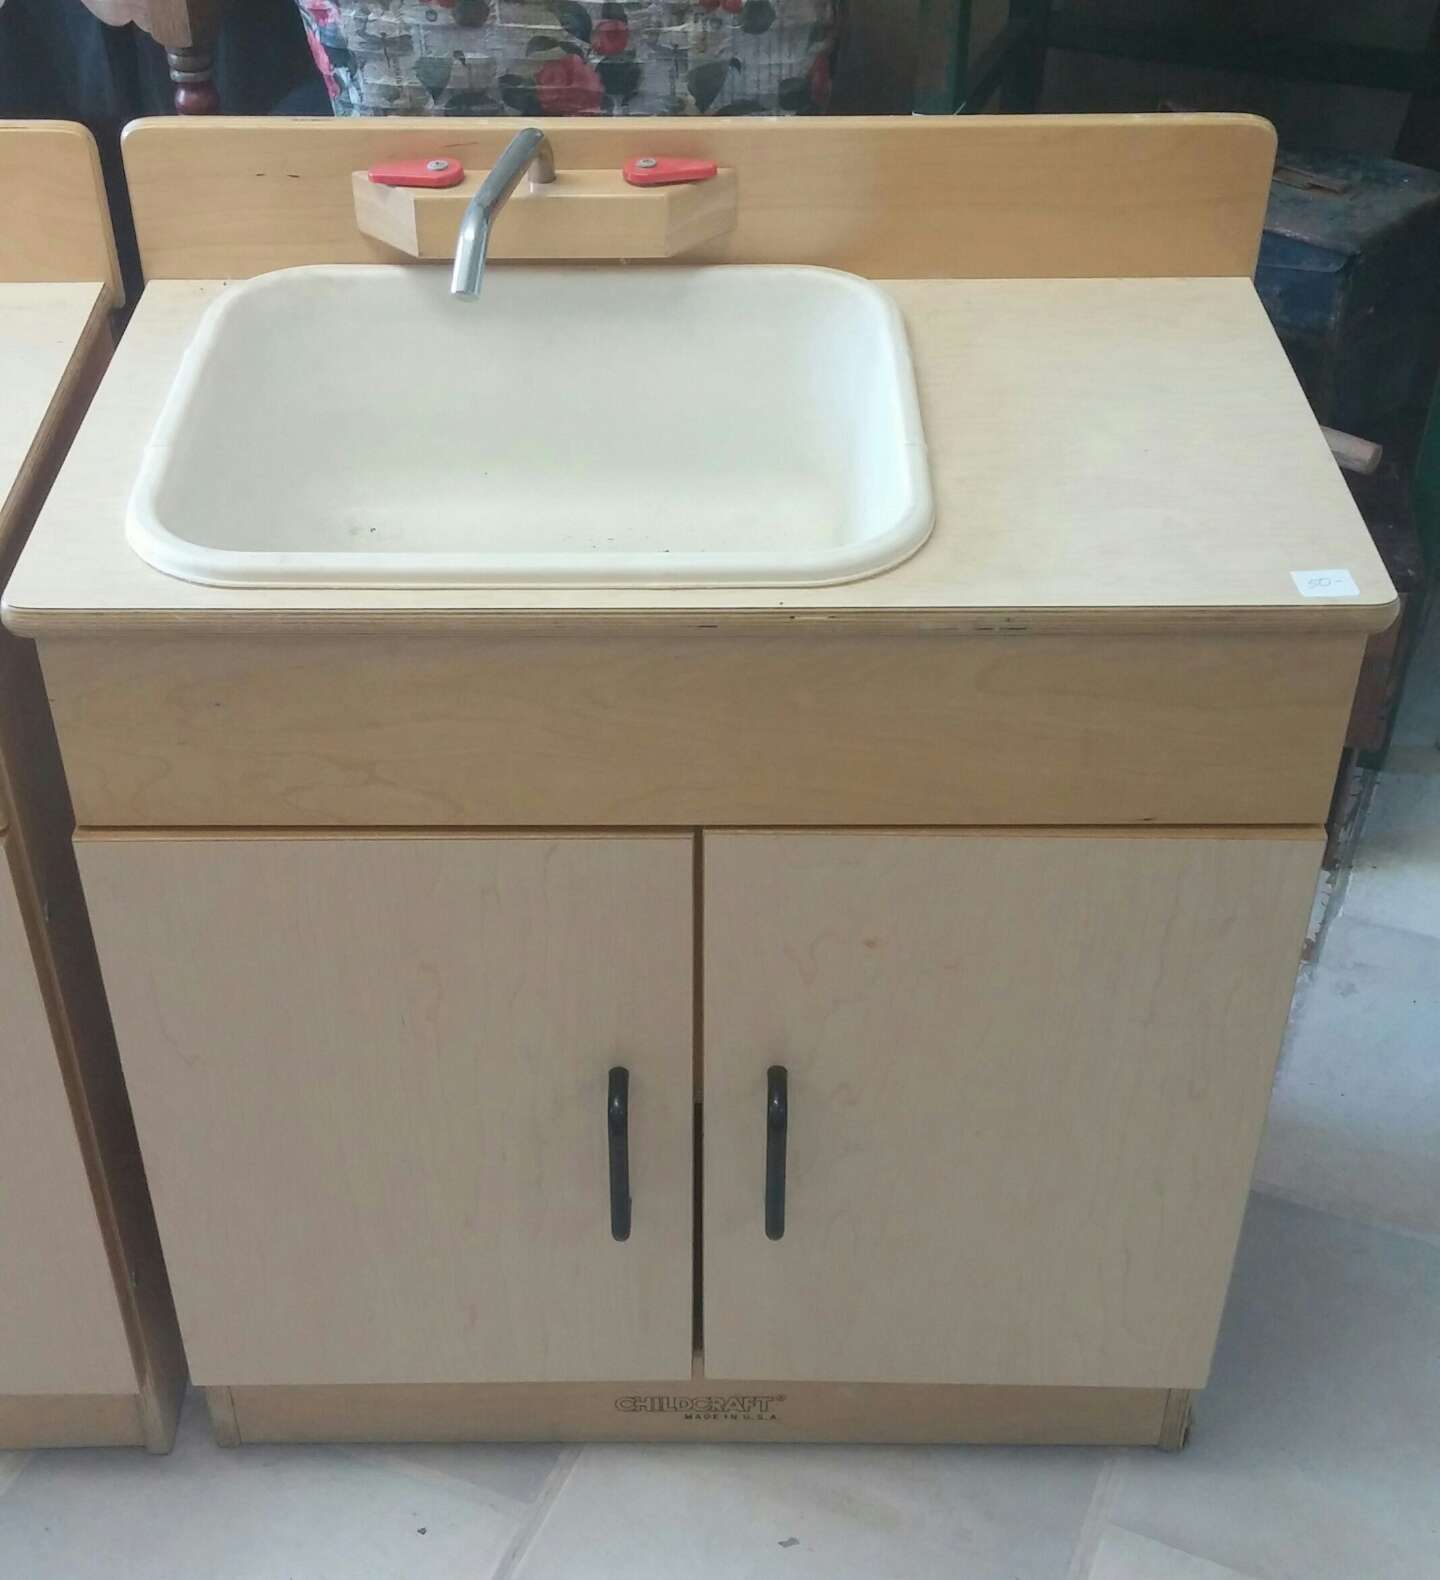 Childcraft play kitchen sink and stove for sale in live for Child craft play kitchen